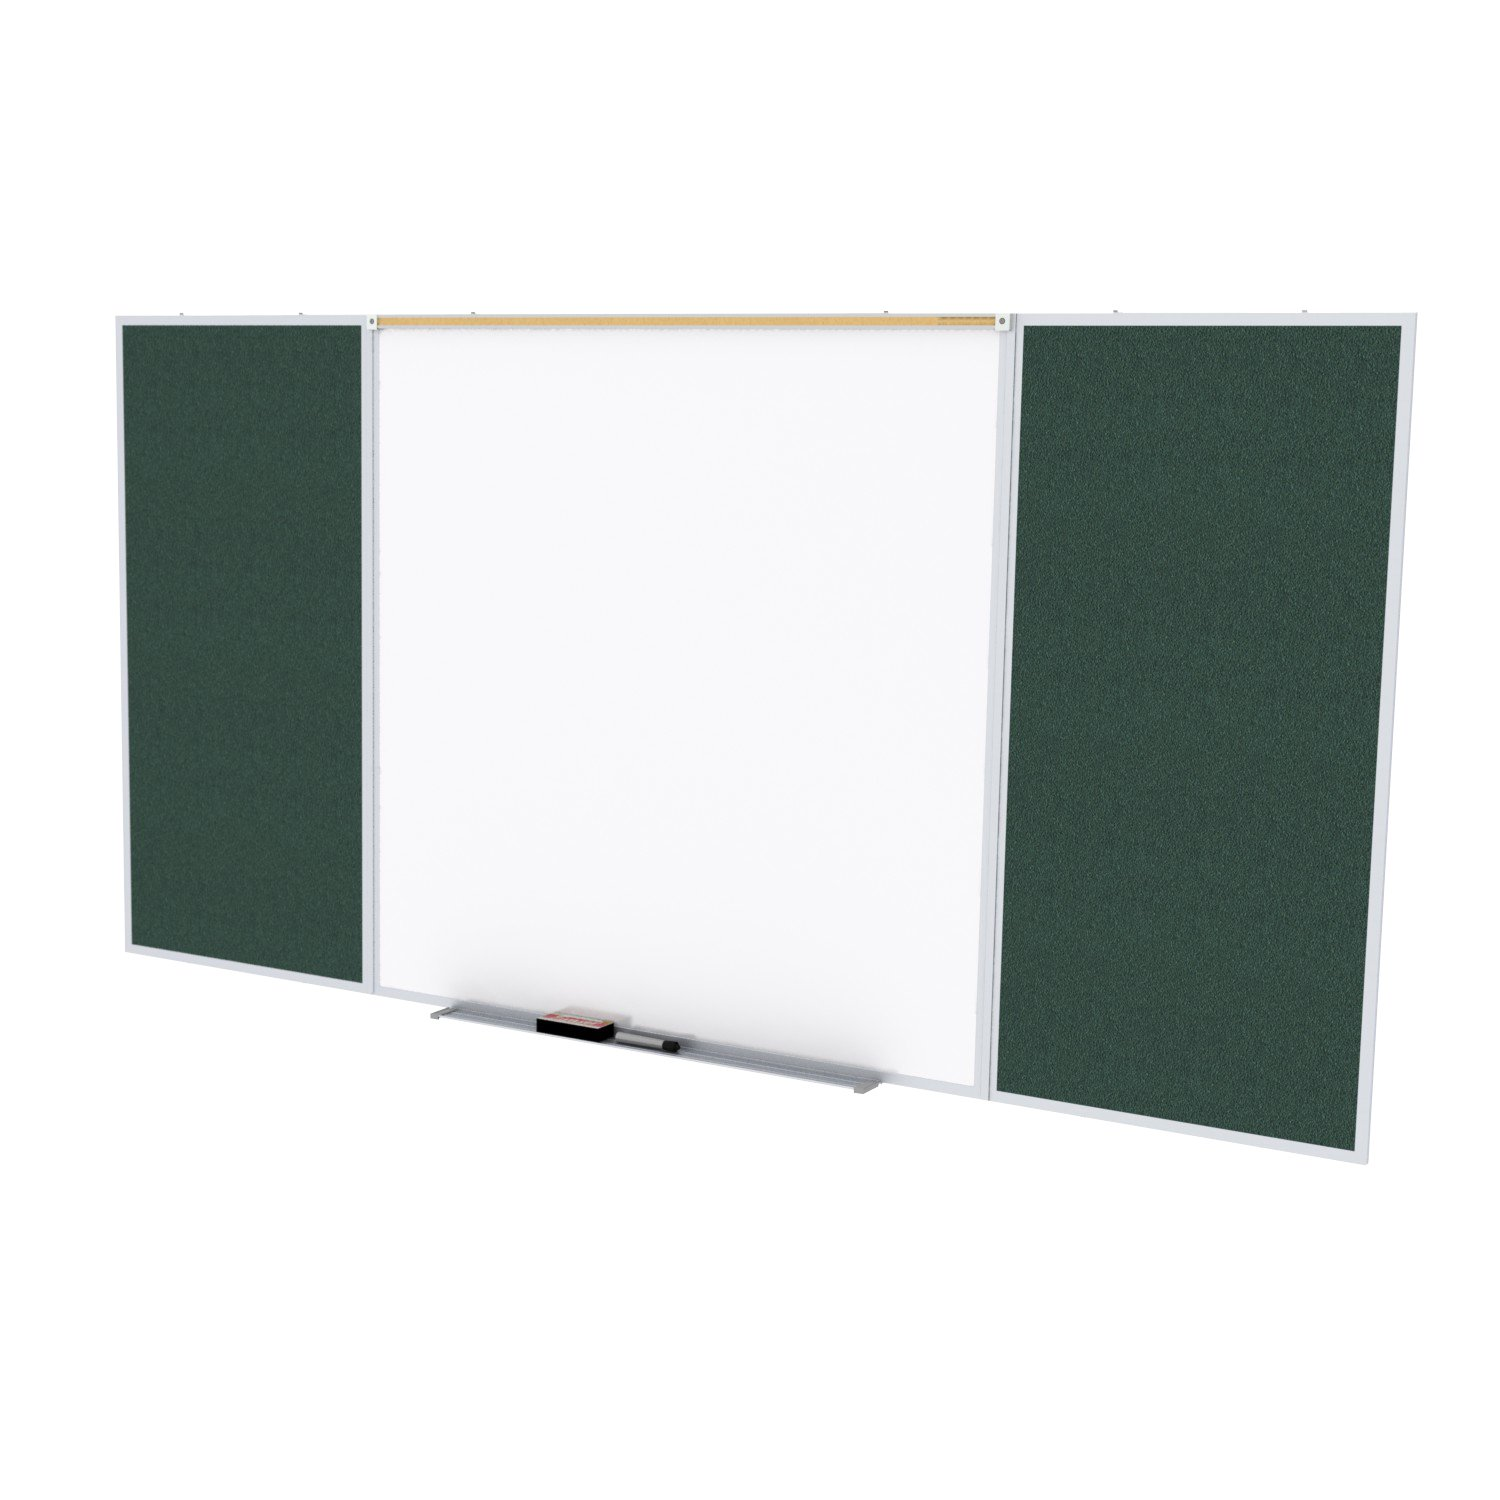 Porcelain Magnetic Whiteboard and Vinyl Fabric Bulletin Board Ghent Style D 4 x 8 Feet Combination Board Made in the USA Ivory